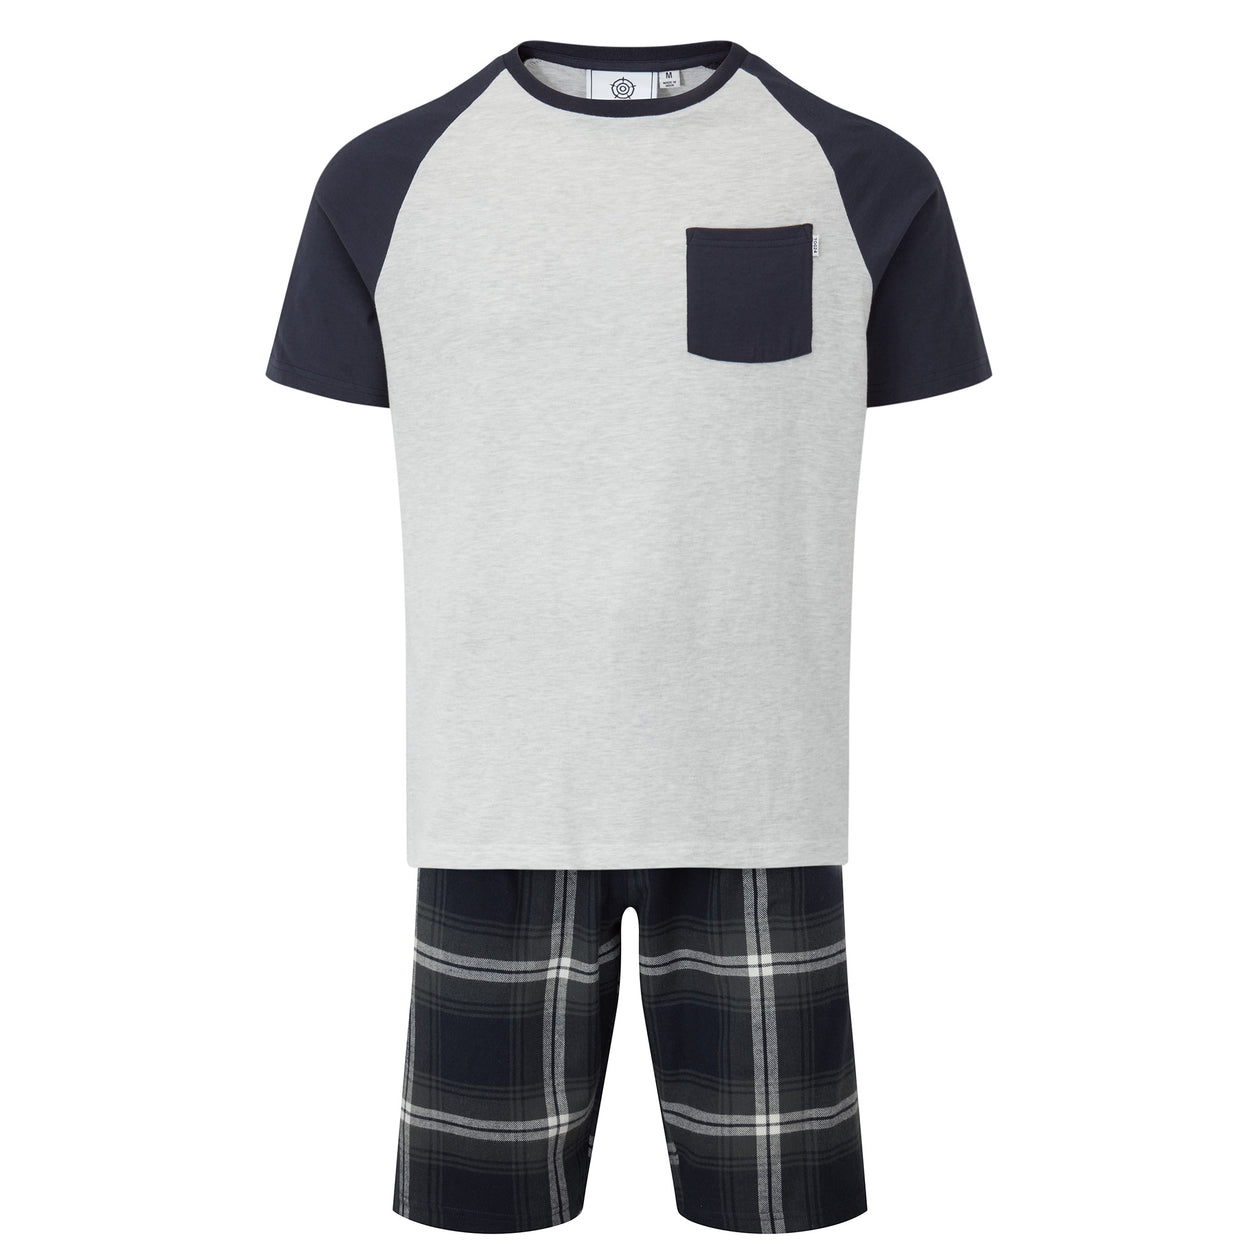 Doze Mens Short Set - Dark Indigo image 4